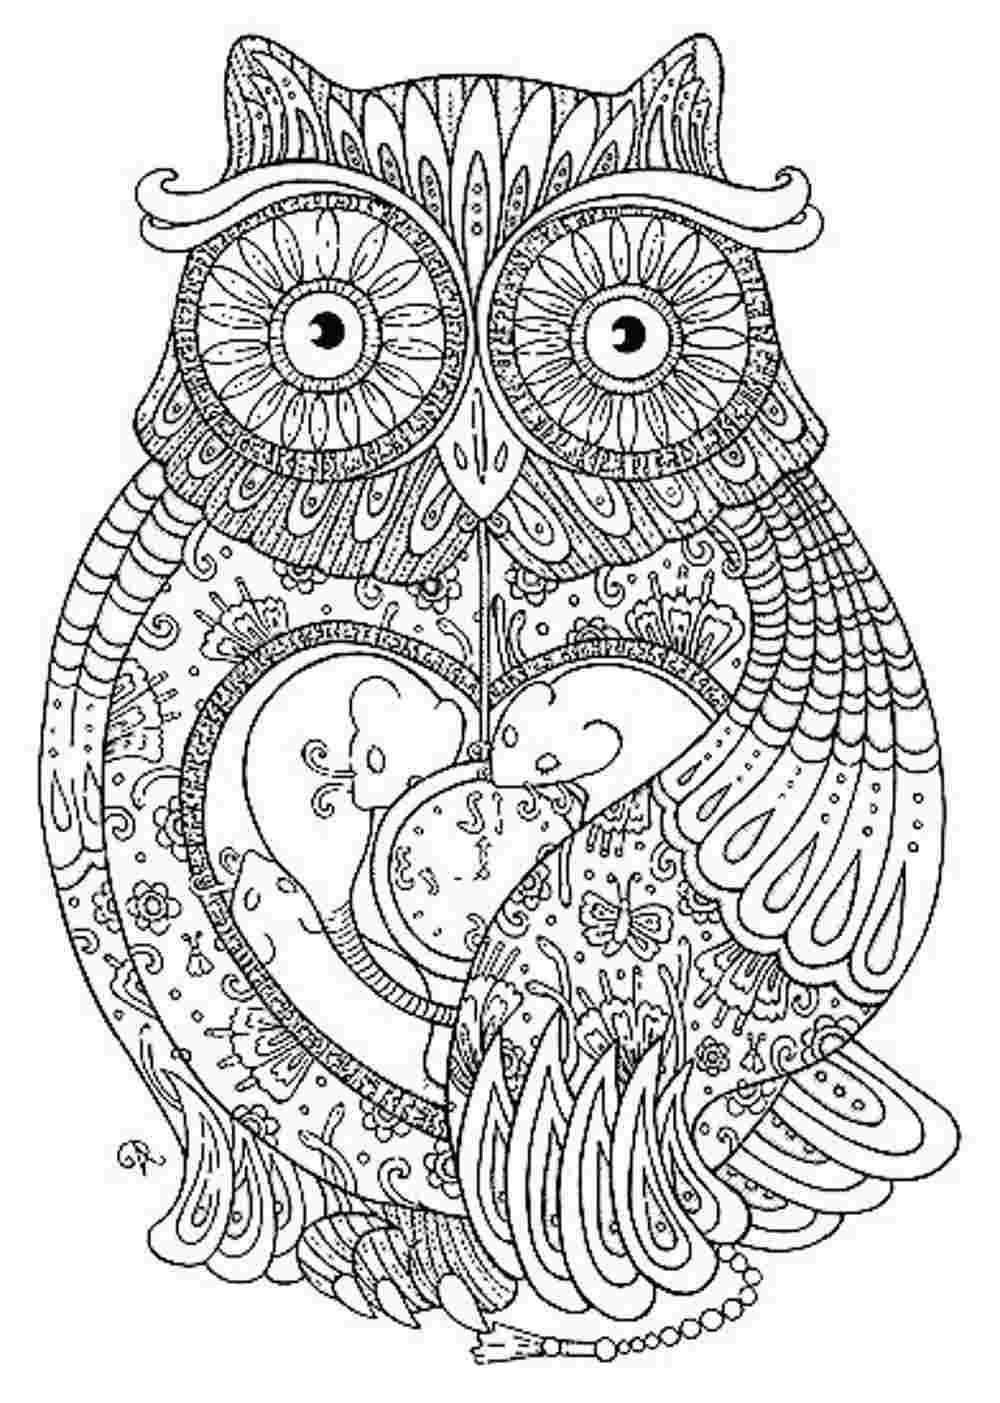 free coloring pages mandala amazingly relaxing free celestial mandala coloring pages coloring free mandala pages